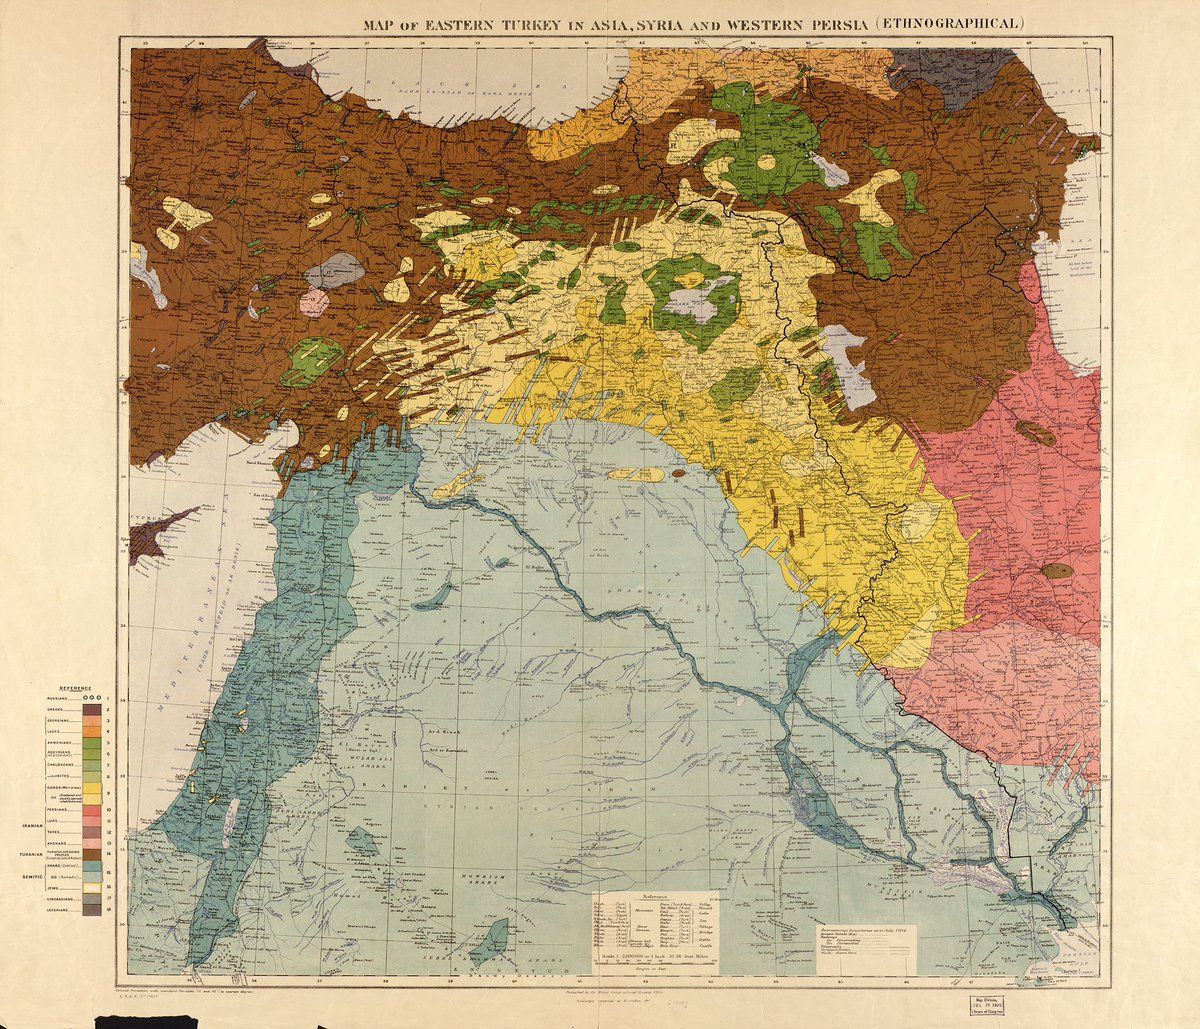 Royalty Free Map%0A Ethnic map of eastern Turkey  Syria and western Persia